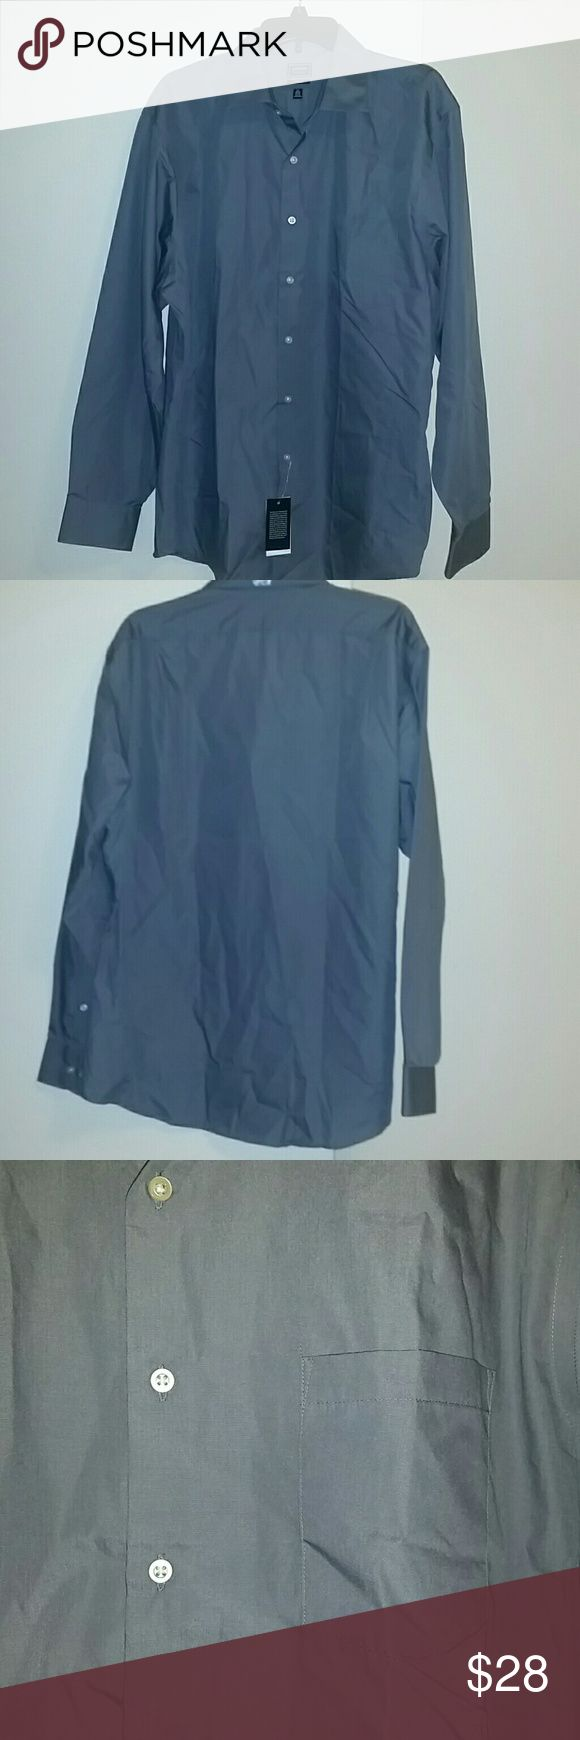 *NWT* Mens Fitted Button Down Arrow Shirt *NWT* Mens fitted button down Arrow Shirt, size 17.5 34-35. Long sleeves, gray color, and No Iron. Arrow Shirts Dress Shirts